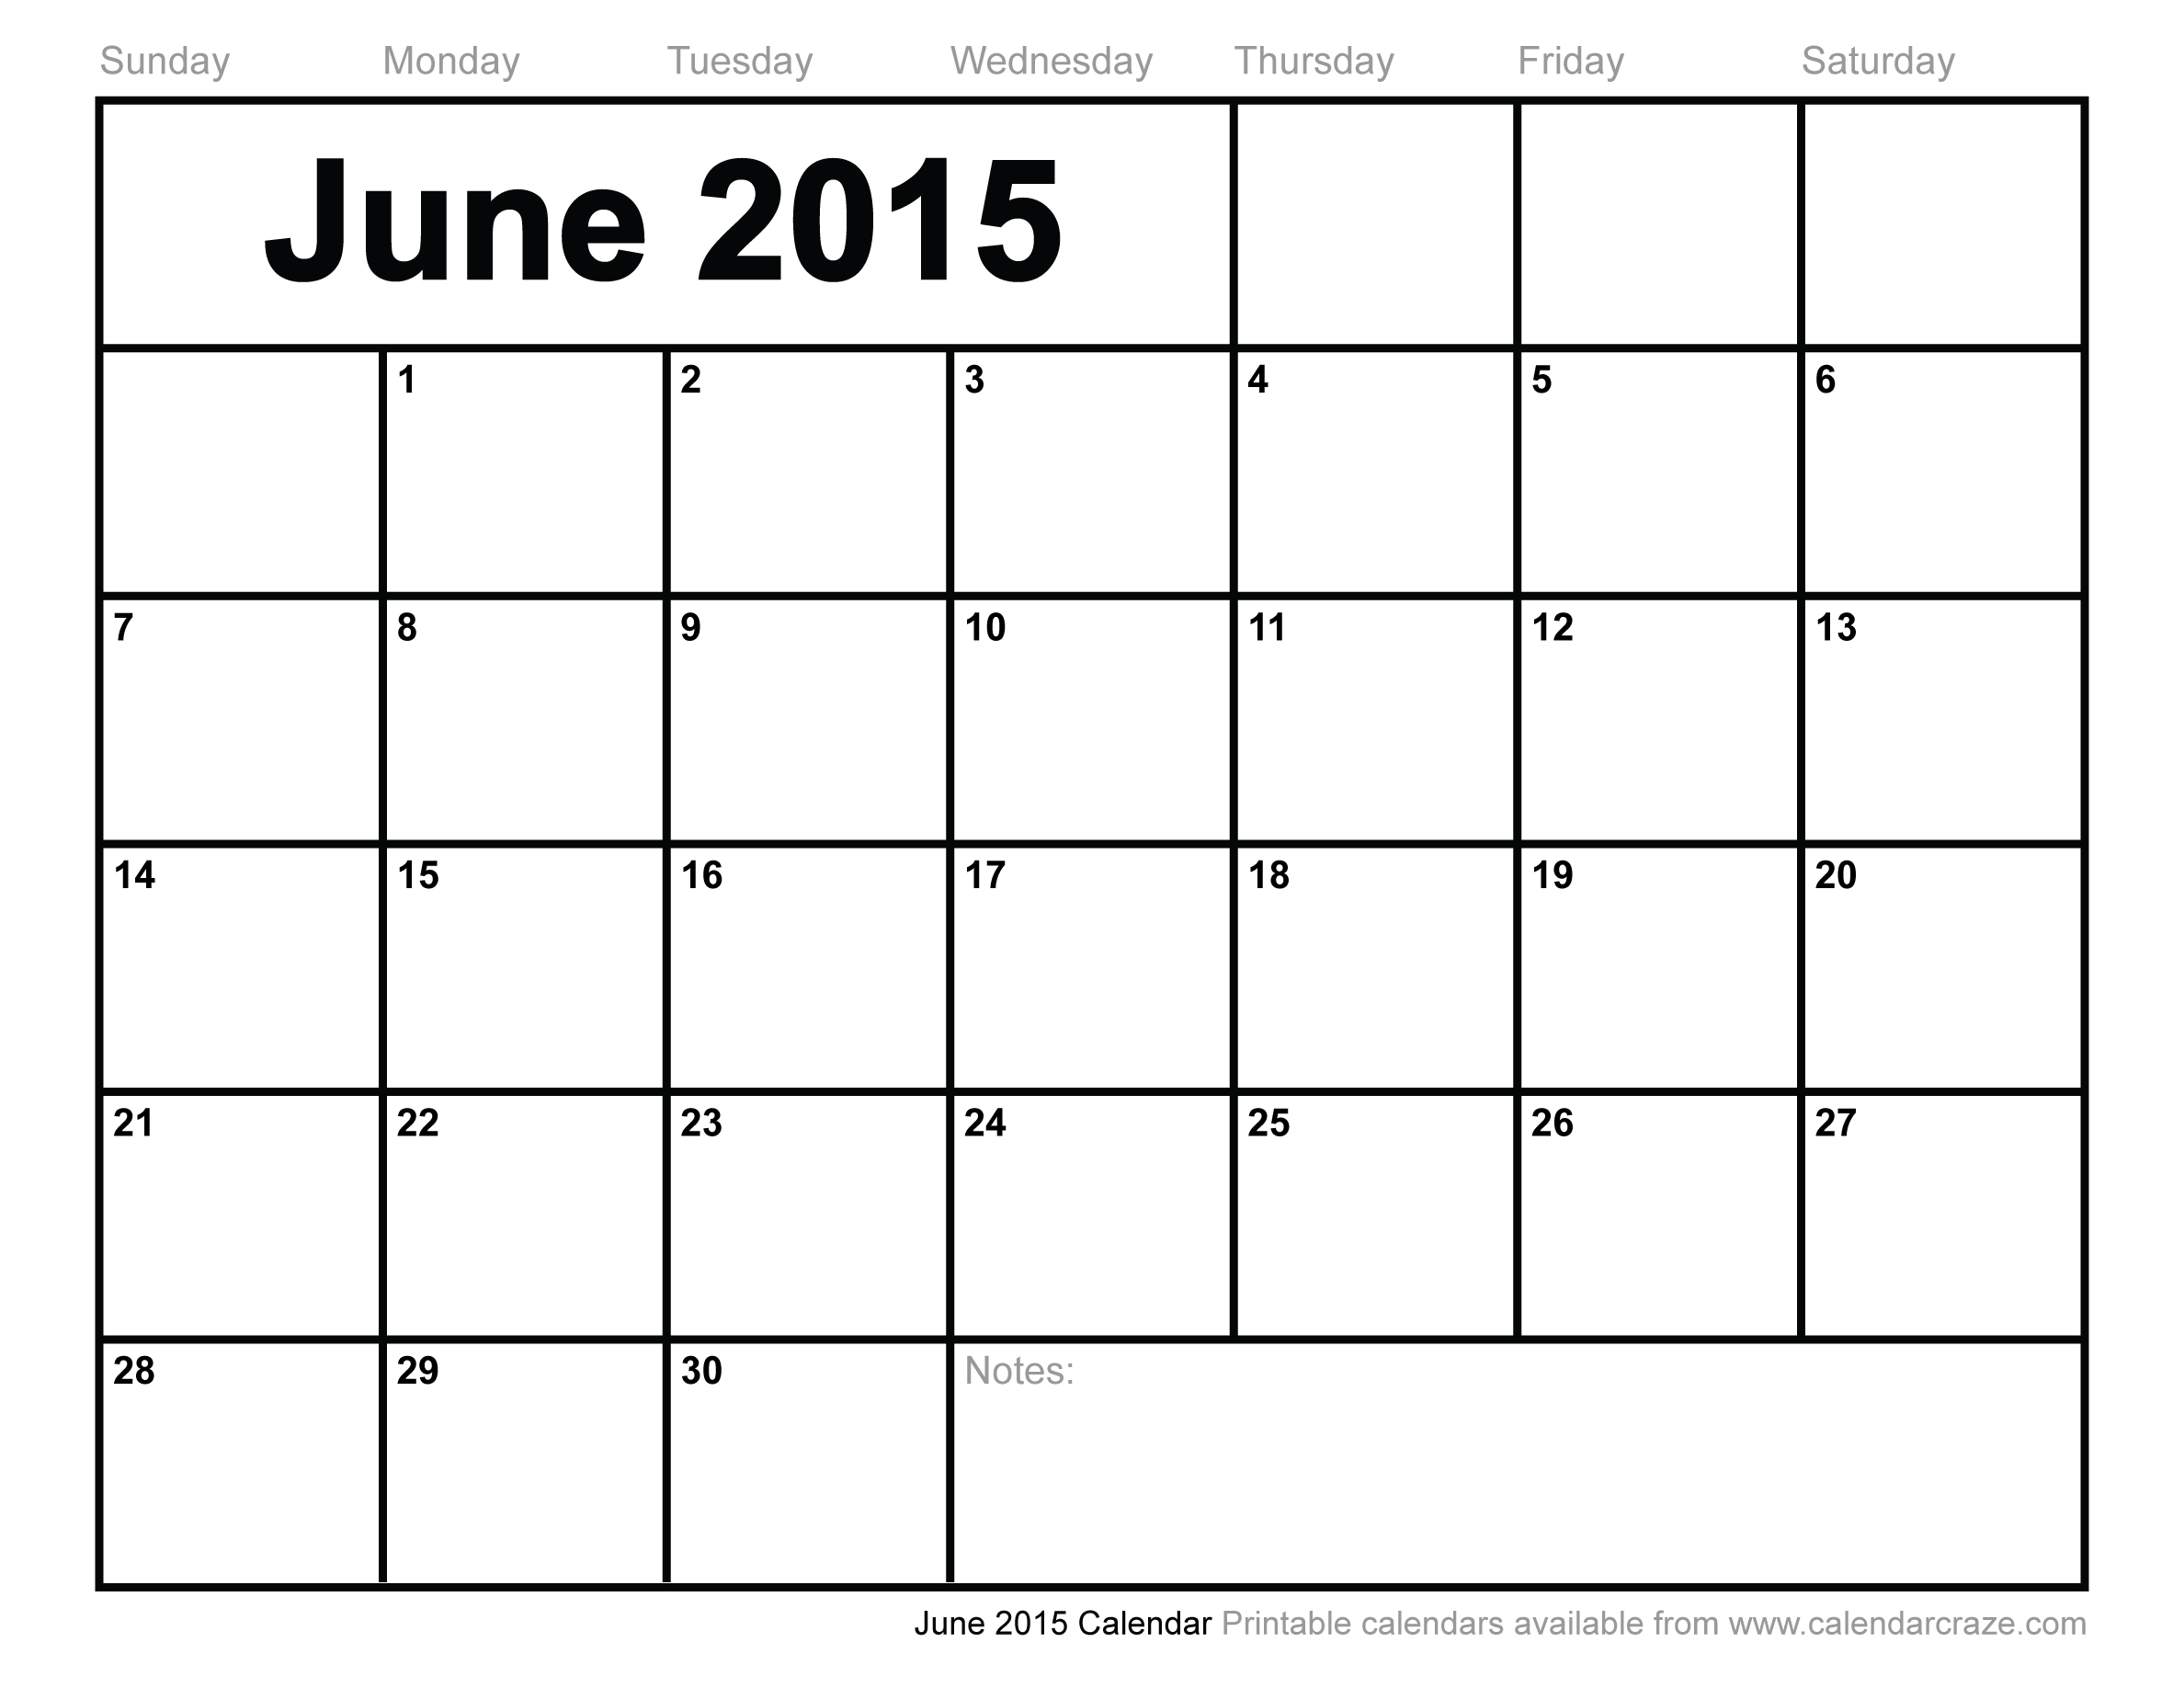 5 Images of June 2015 Calendar Printable